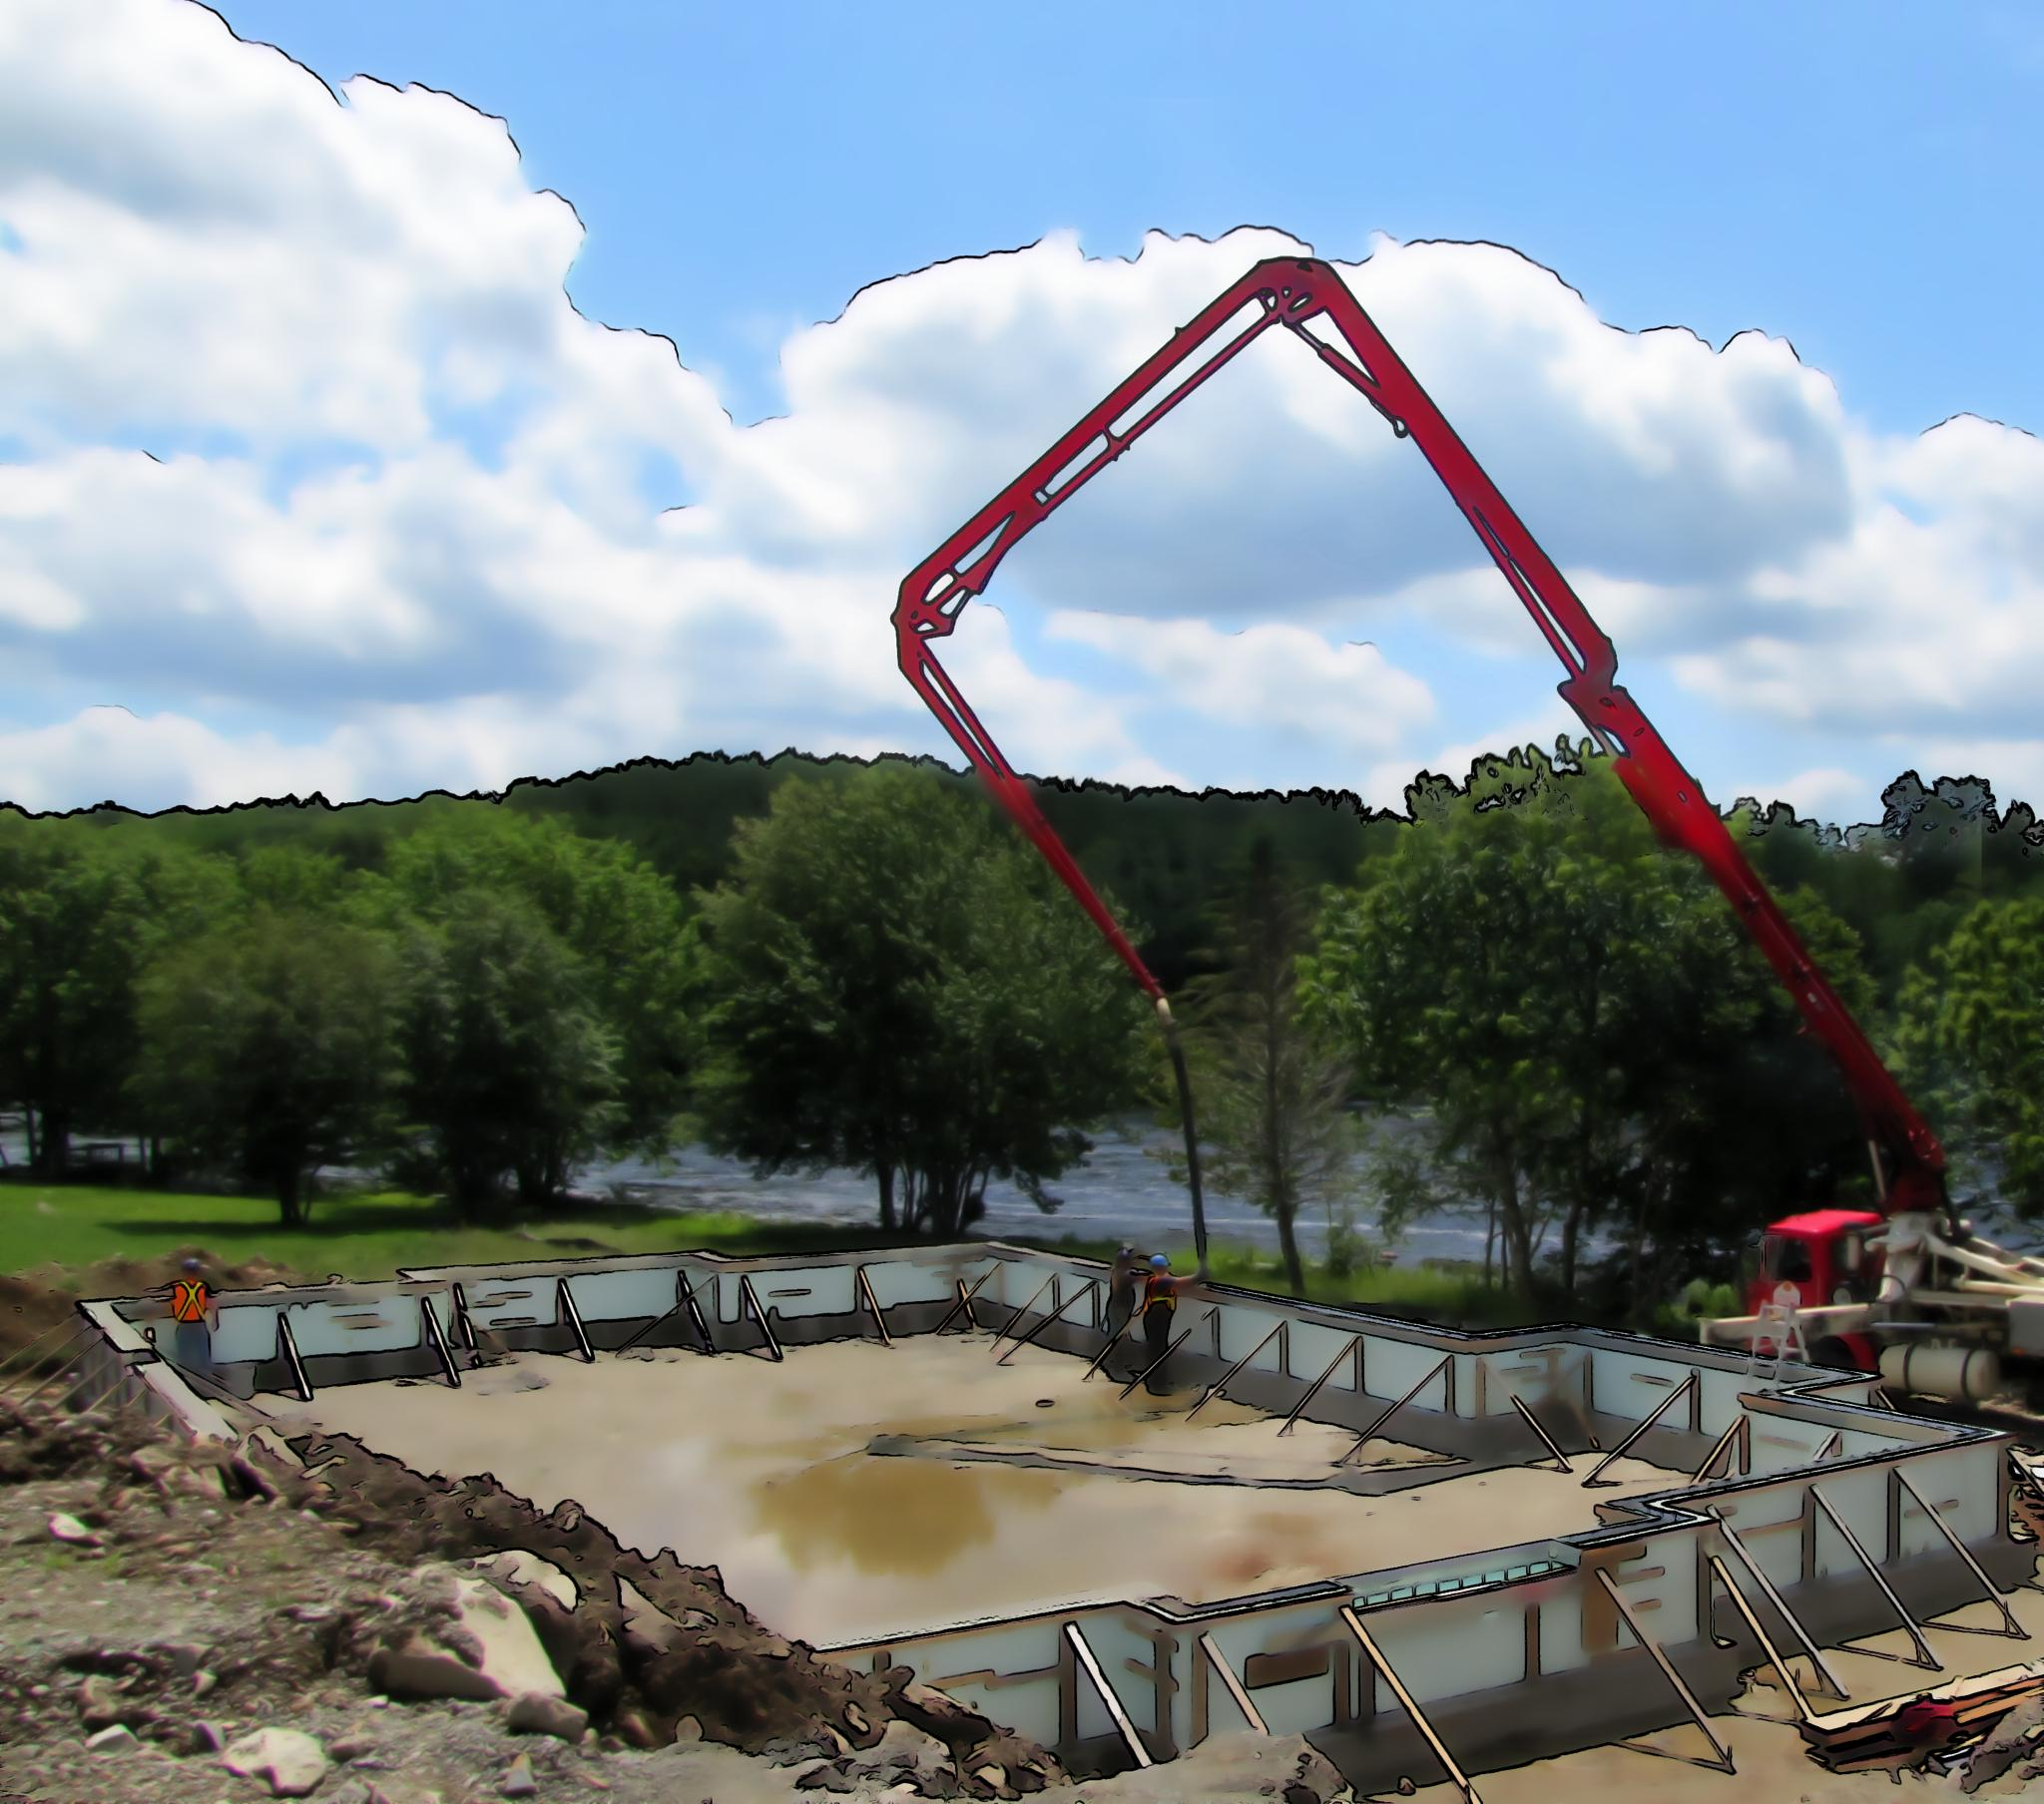 Pumping Concrete by crow eddy